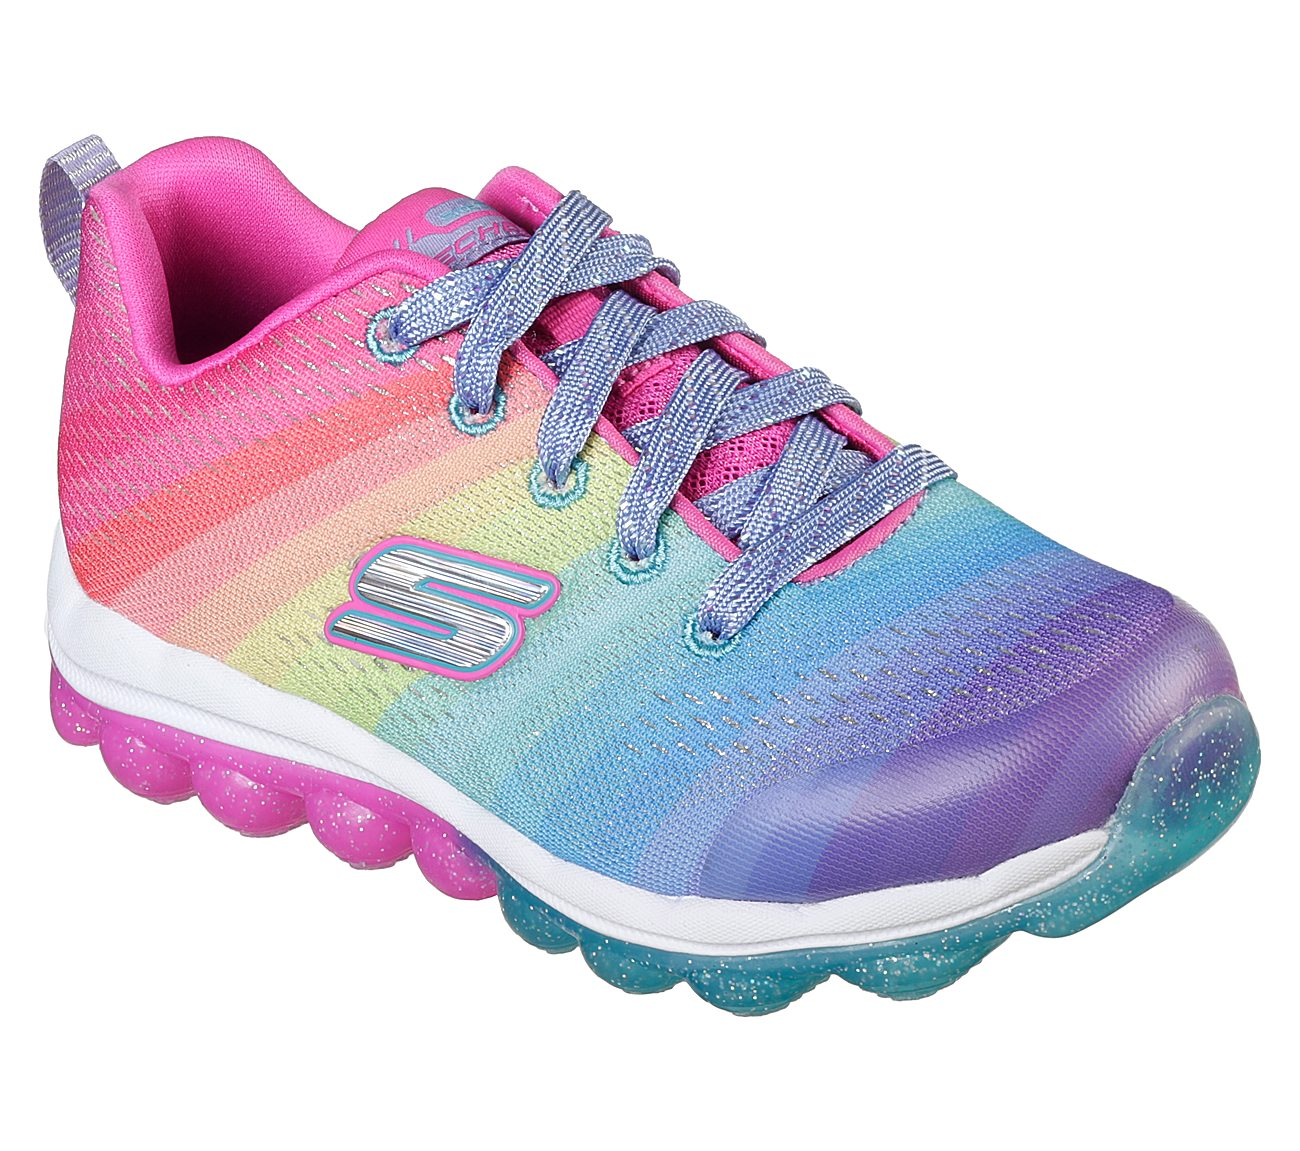 Rainbow Drops SKECHERS Skech-Air Shoes